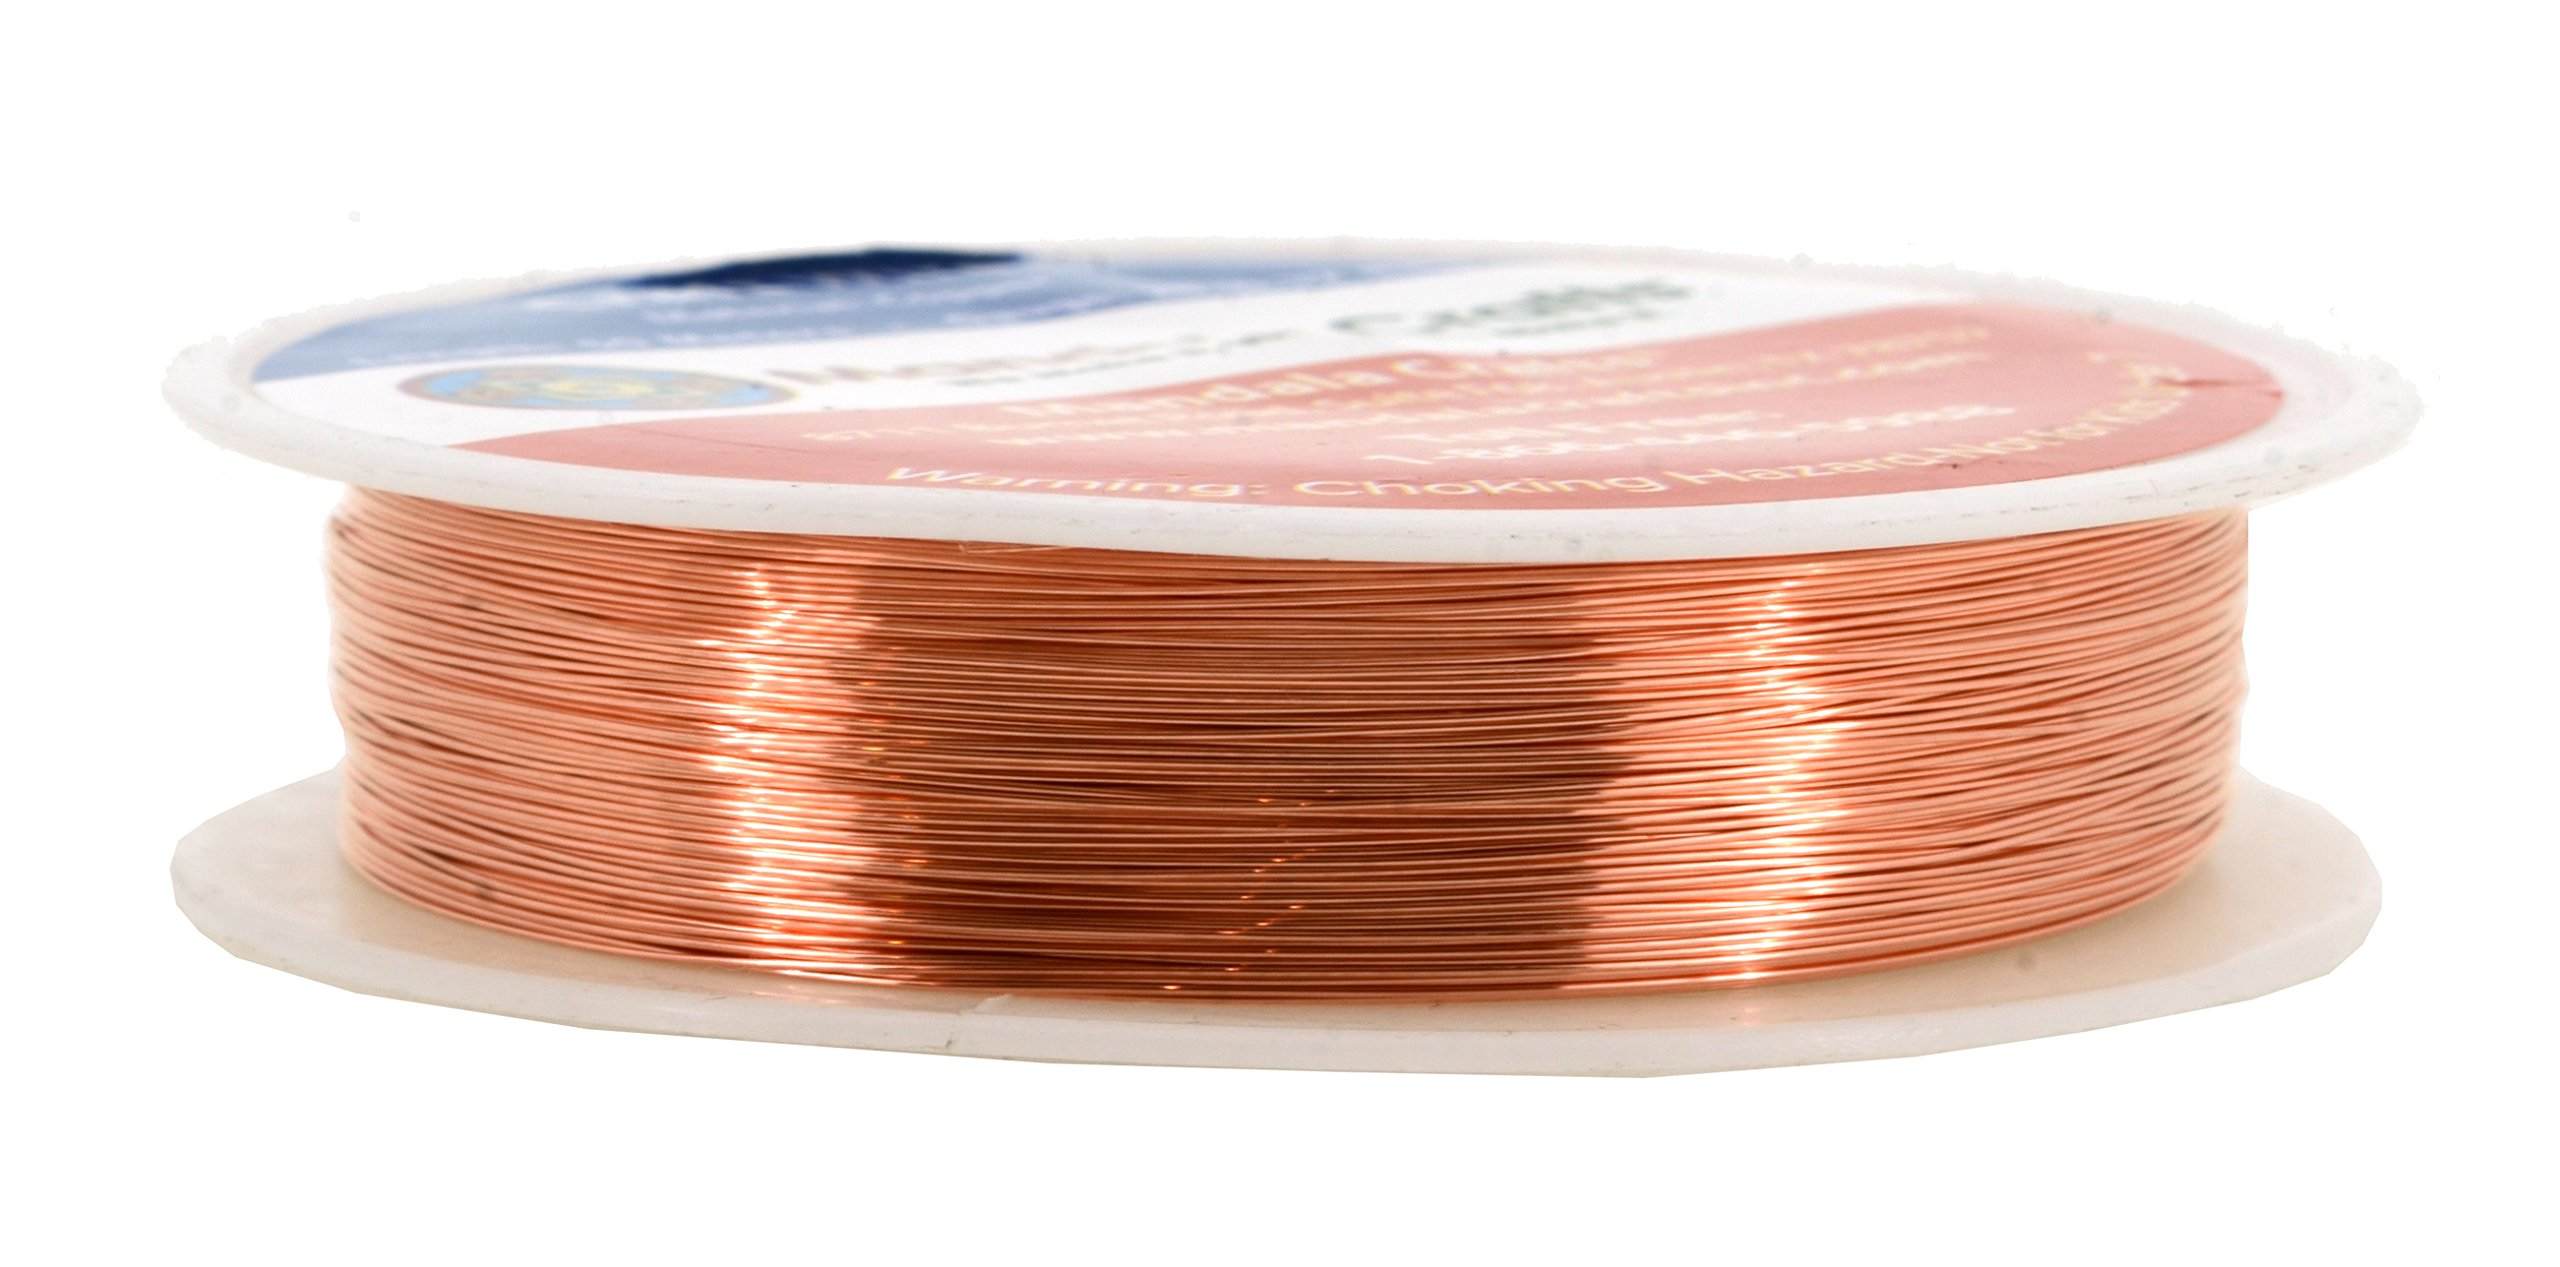 Where To Buy Wire Mandala Crafts 18 20 22 24 26 28 Gauge Thick Solid Copper Wire For Beading Wrapping Jewelry Making 28 Gauge 50m Bare Copper